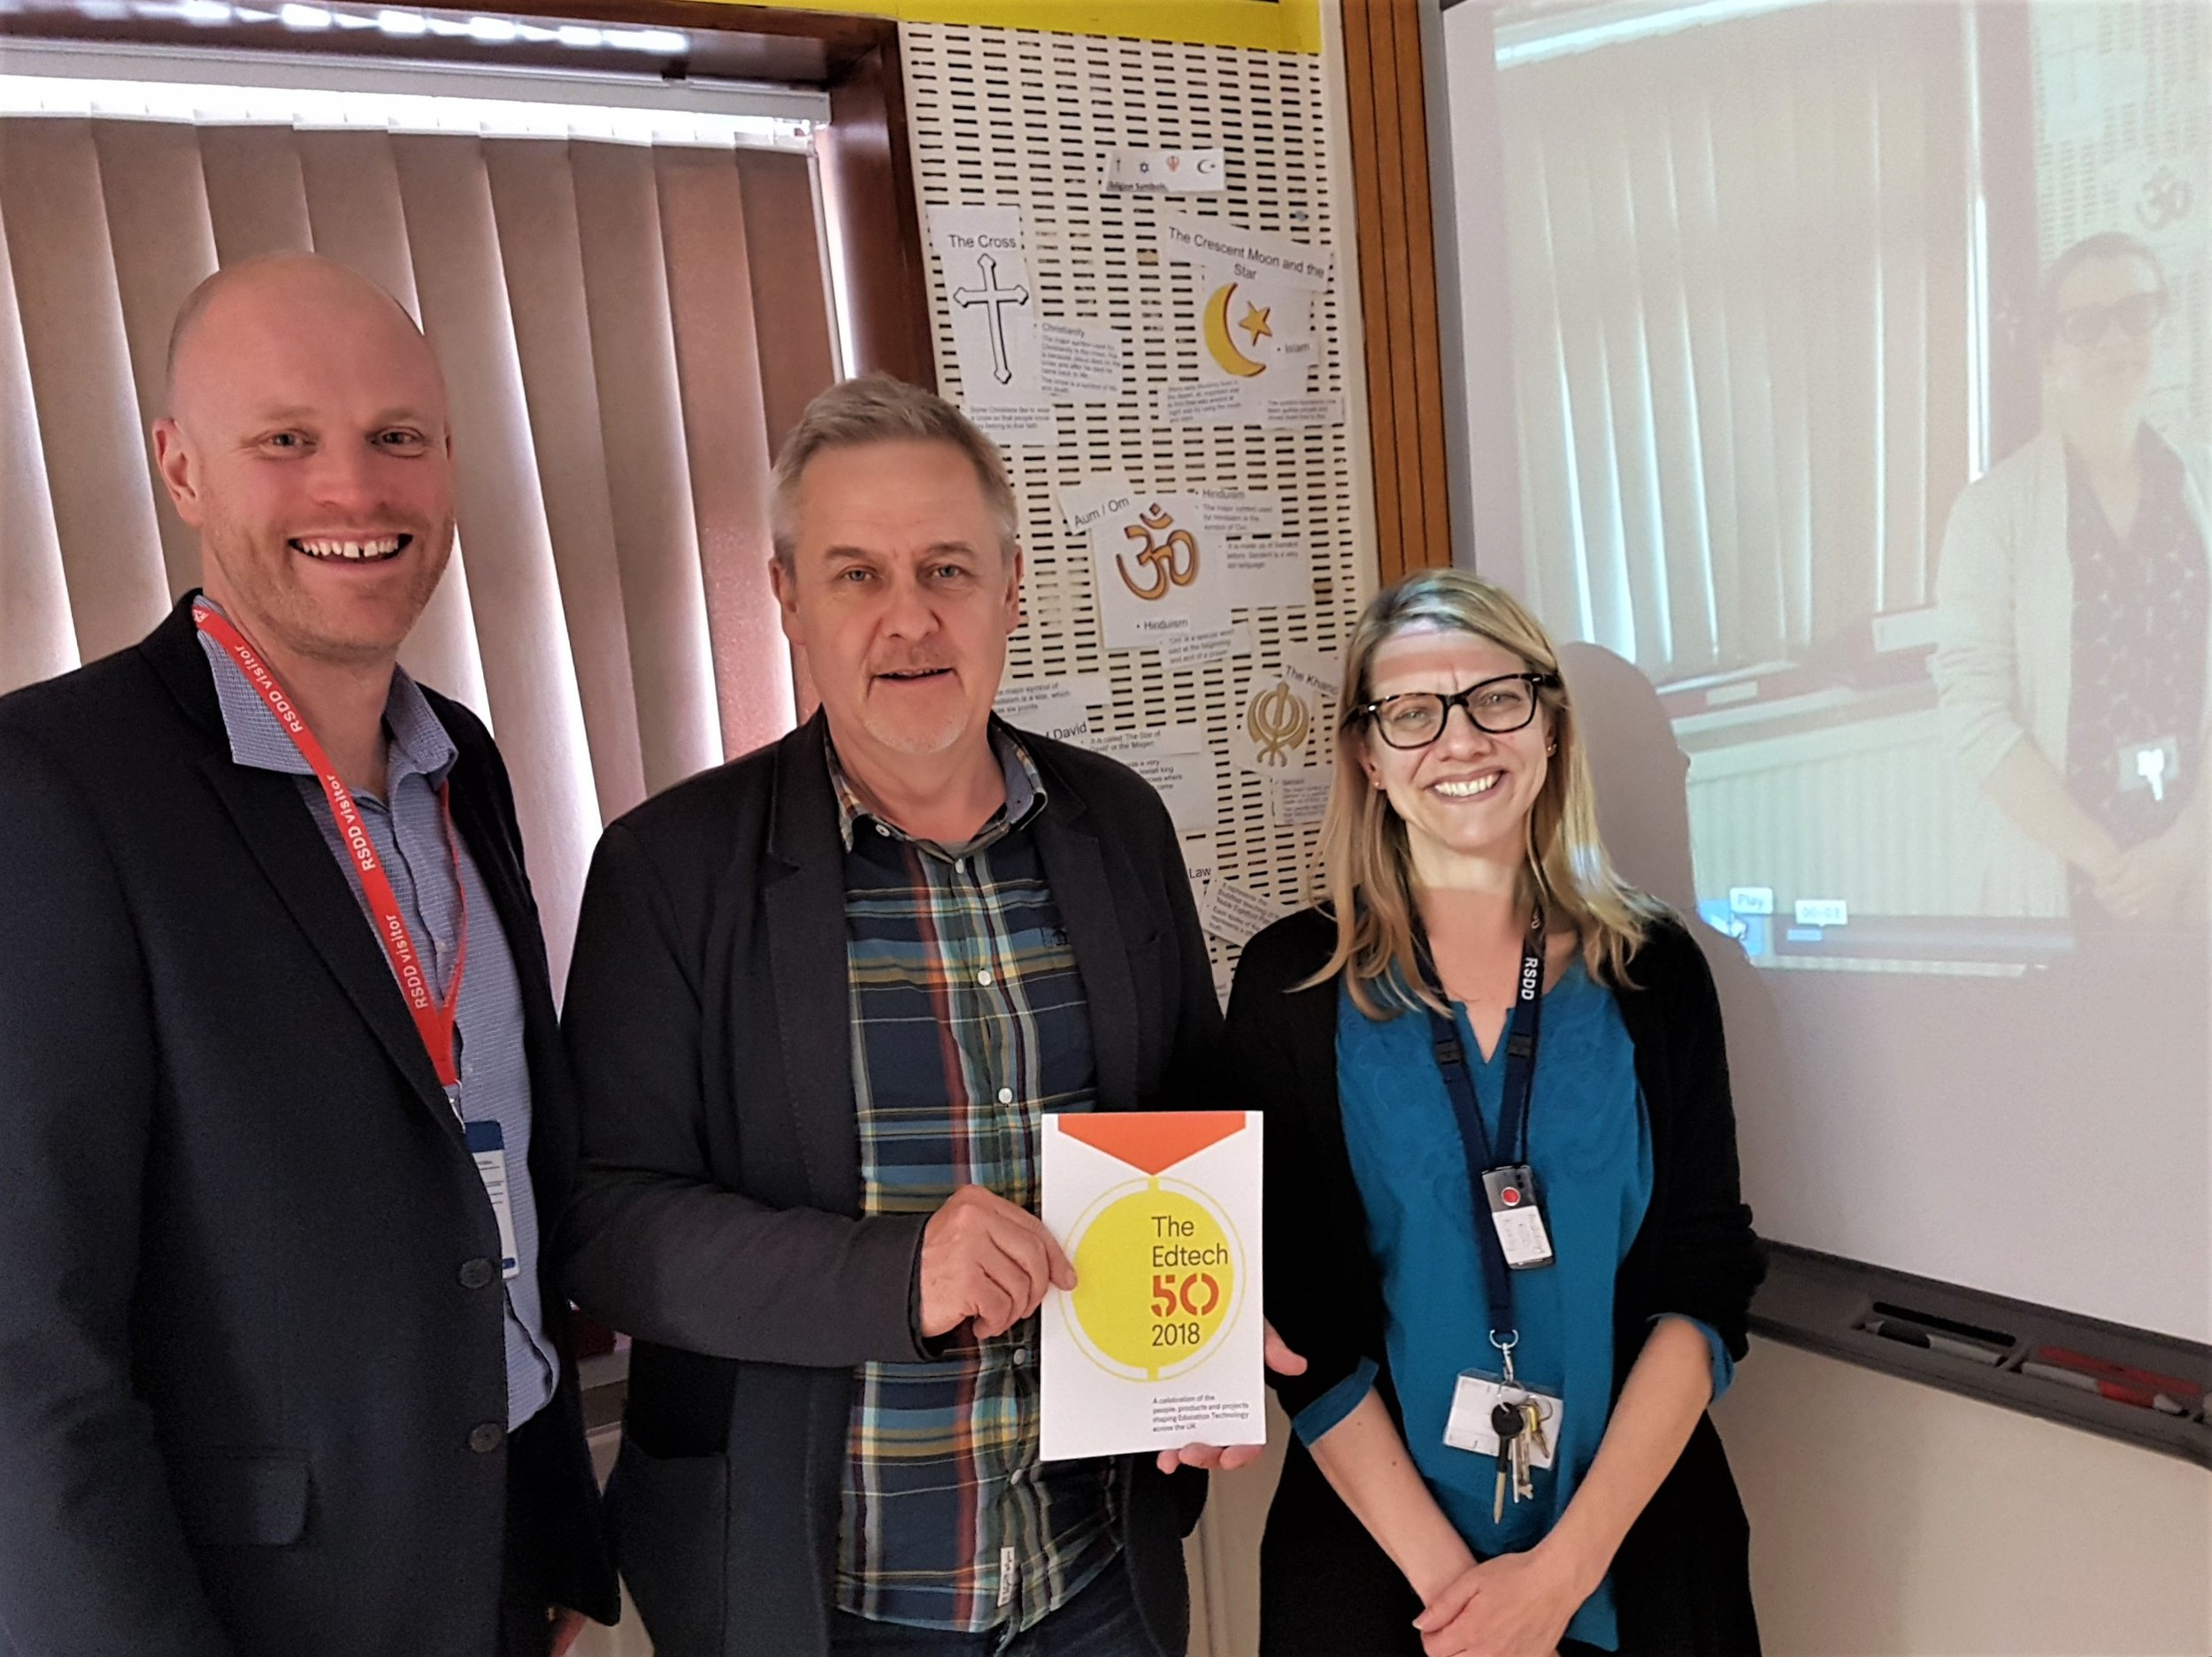 From left, Paul Rose, inventor of YouTeachMe, Ty Goddard, director of EdTechUK and Cathie Birch, a maths teacher at Royal School for the Deaf, who has been using the YouTeachMe system with its students. Penguin PR: public relations, media and communications